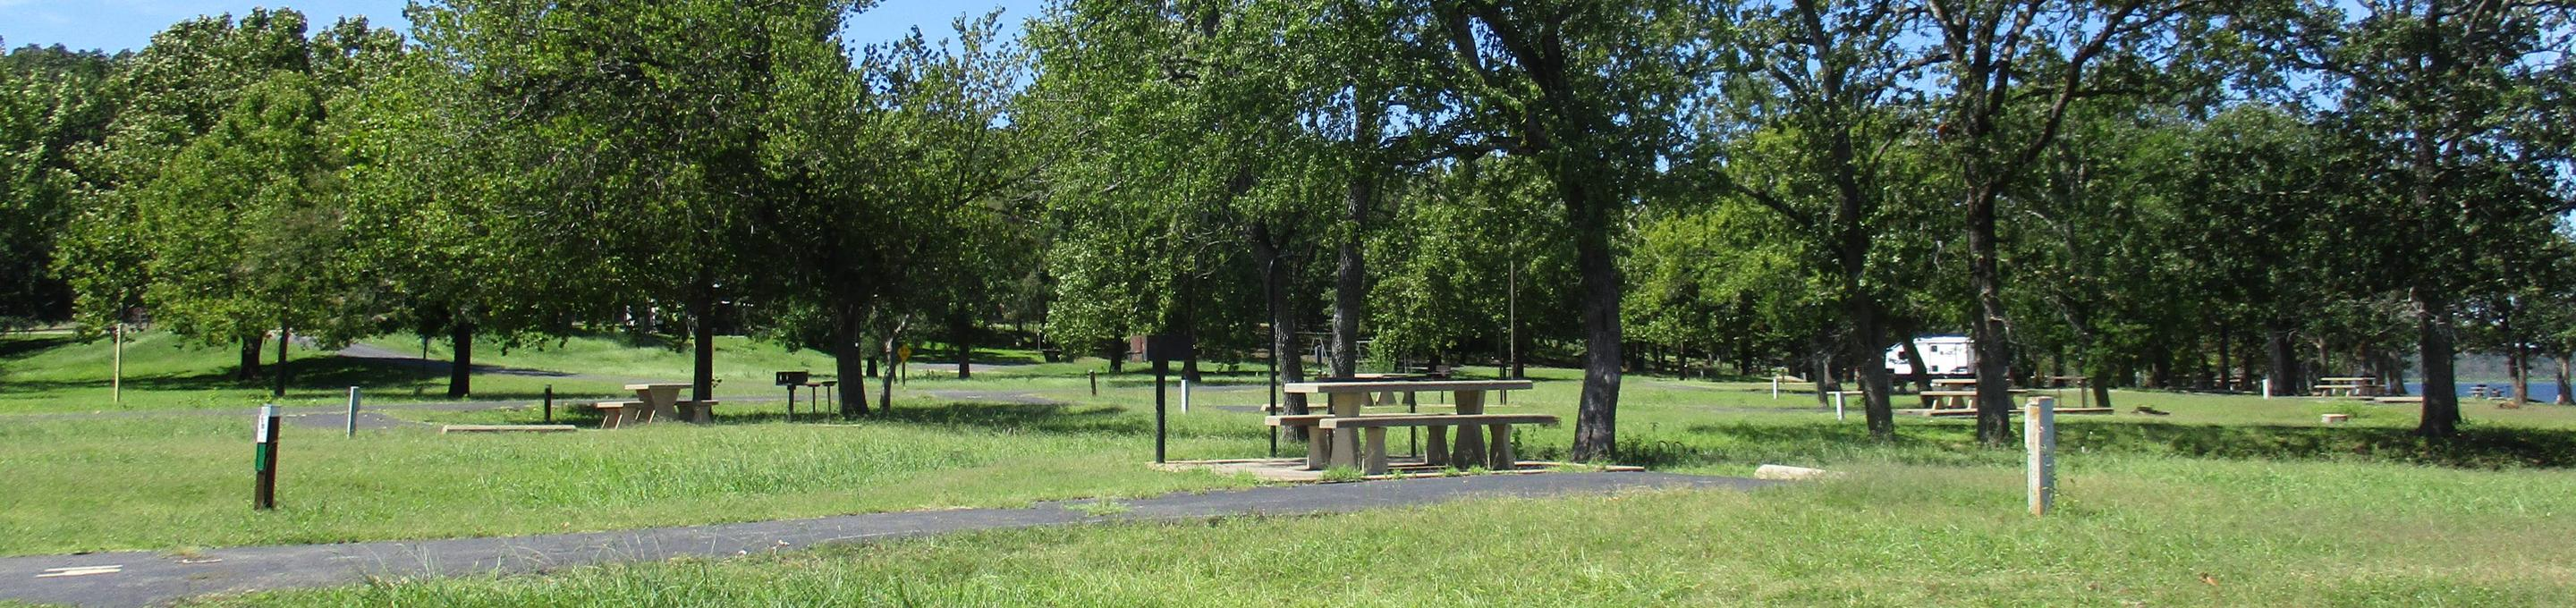 Site 14 - WildwoodSite 14 is a back-in site surrounded by a large green space.  Site offers minimal shade at picnic table.